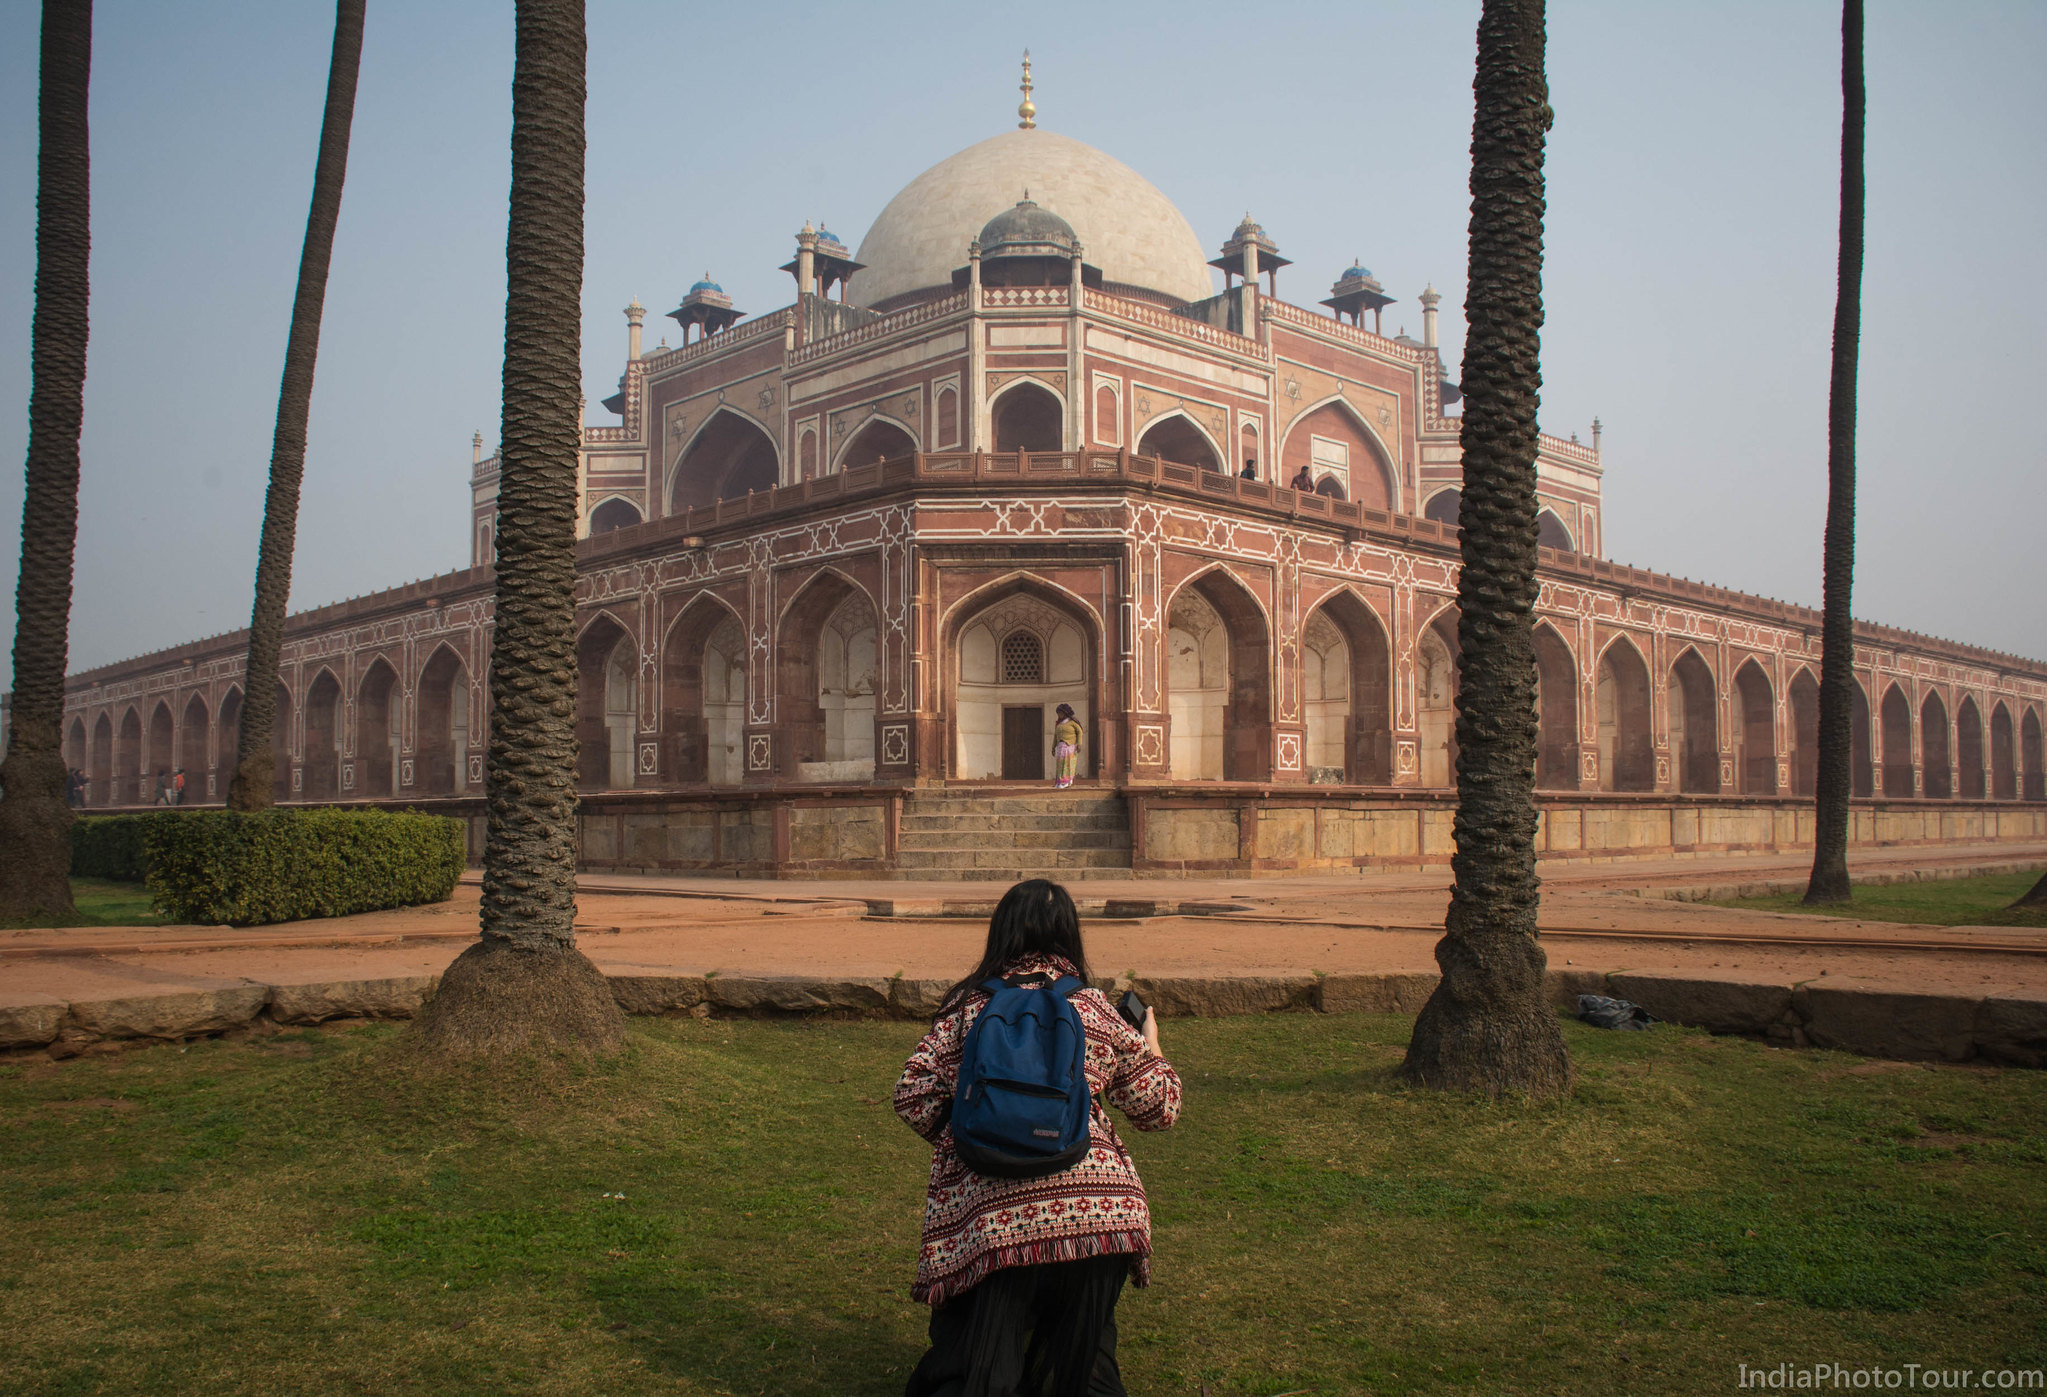 Morning visit to Humayun's Tomb